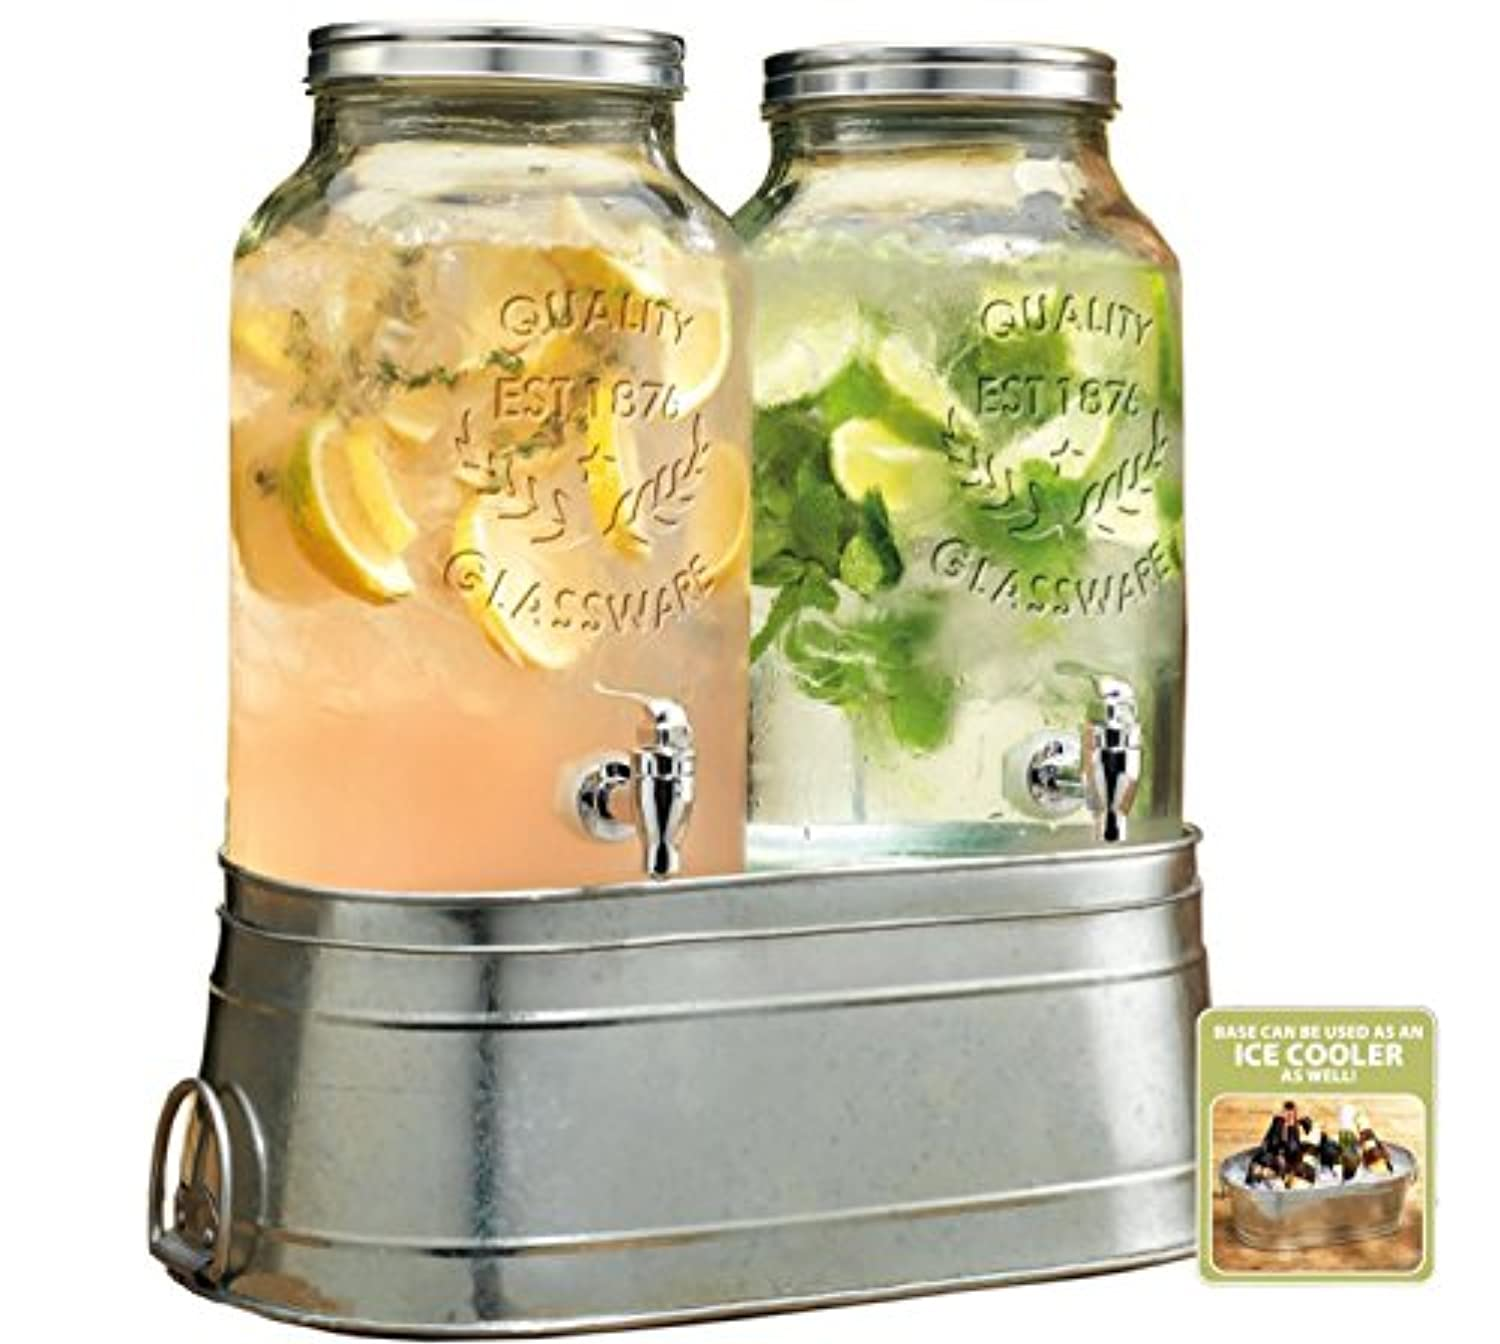 Two (2) 1.5 Gallon Each Quality Ice Cold Clear Glass Jug Dispensers with Galvanized Metal Display Stand/ice Bucket. by TWI